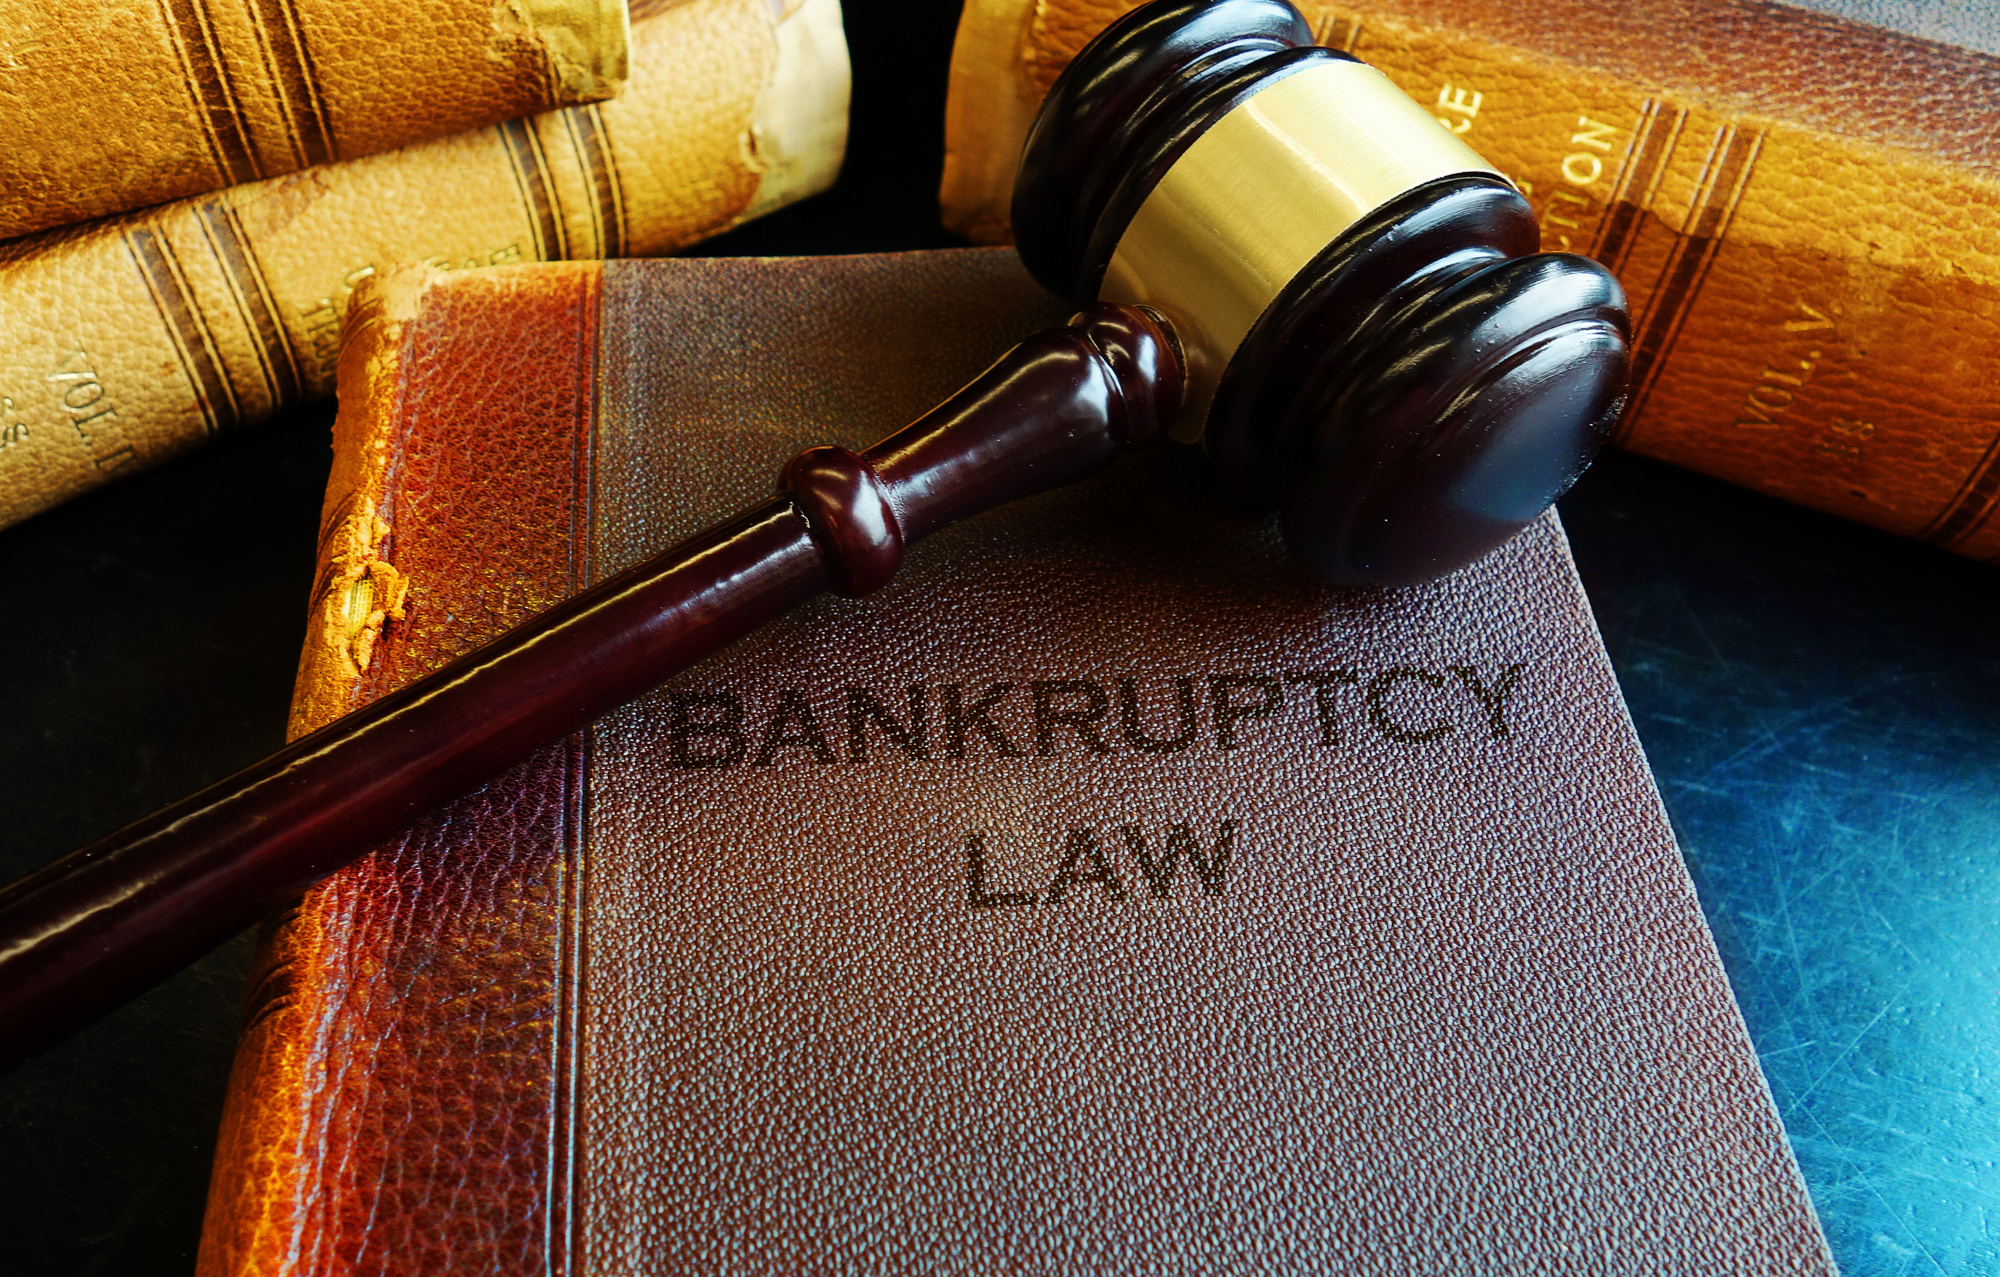 Book on Bankruptcy Law and a Gavel